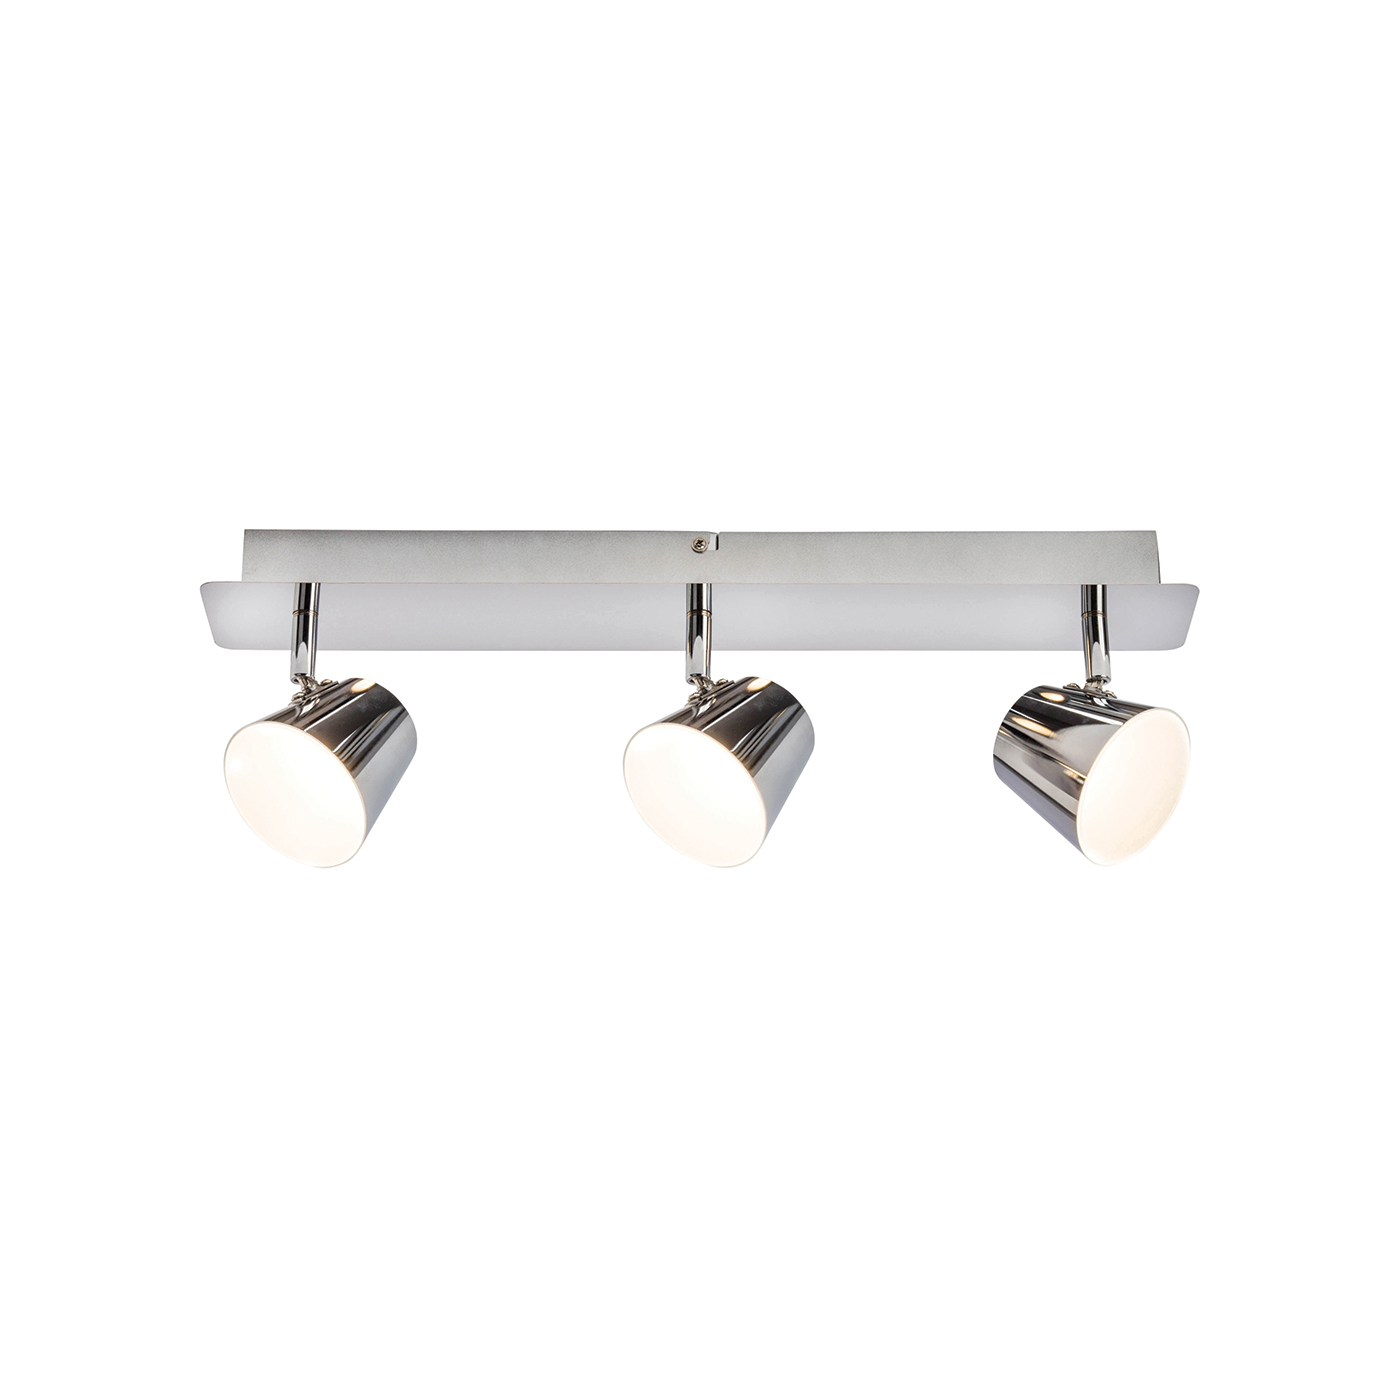 Endon Torsion ceiling spotlight plate 3x 5W Chrome effect plate frosted acrylic Thumbnail 1